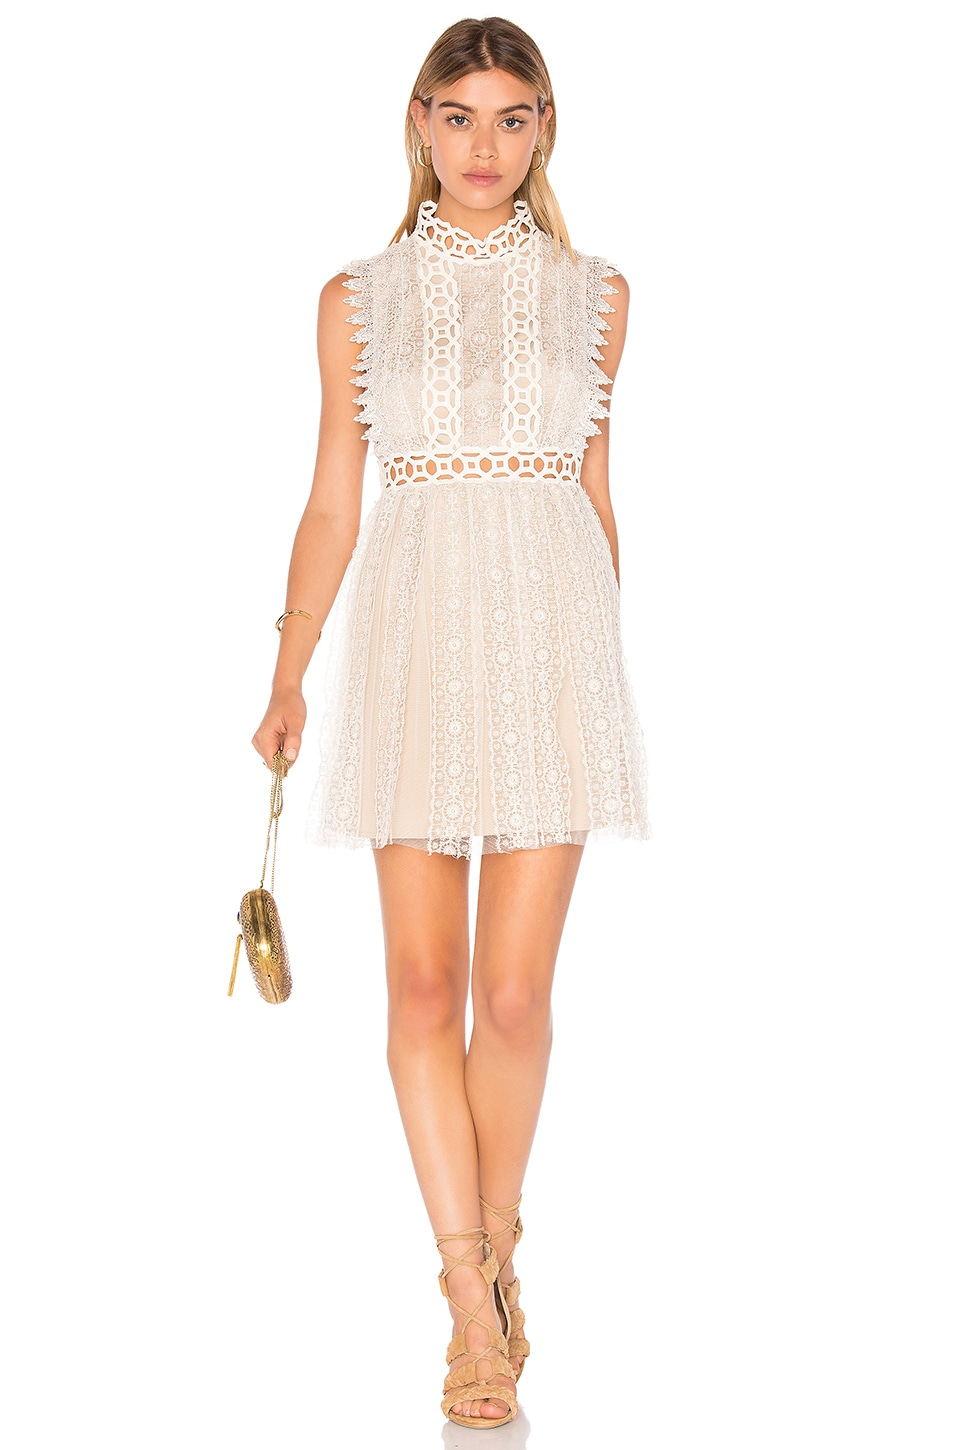 Free People Forever Lace Babydoll Dress in Cream